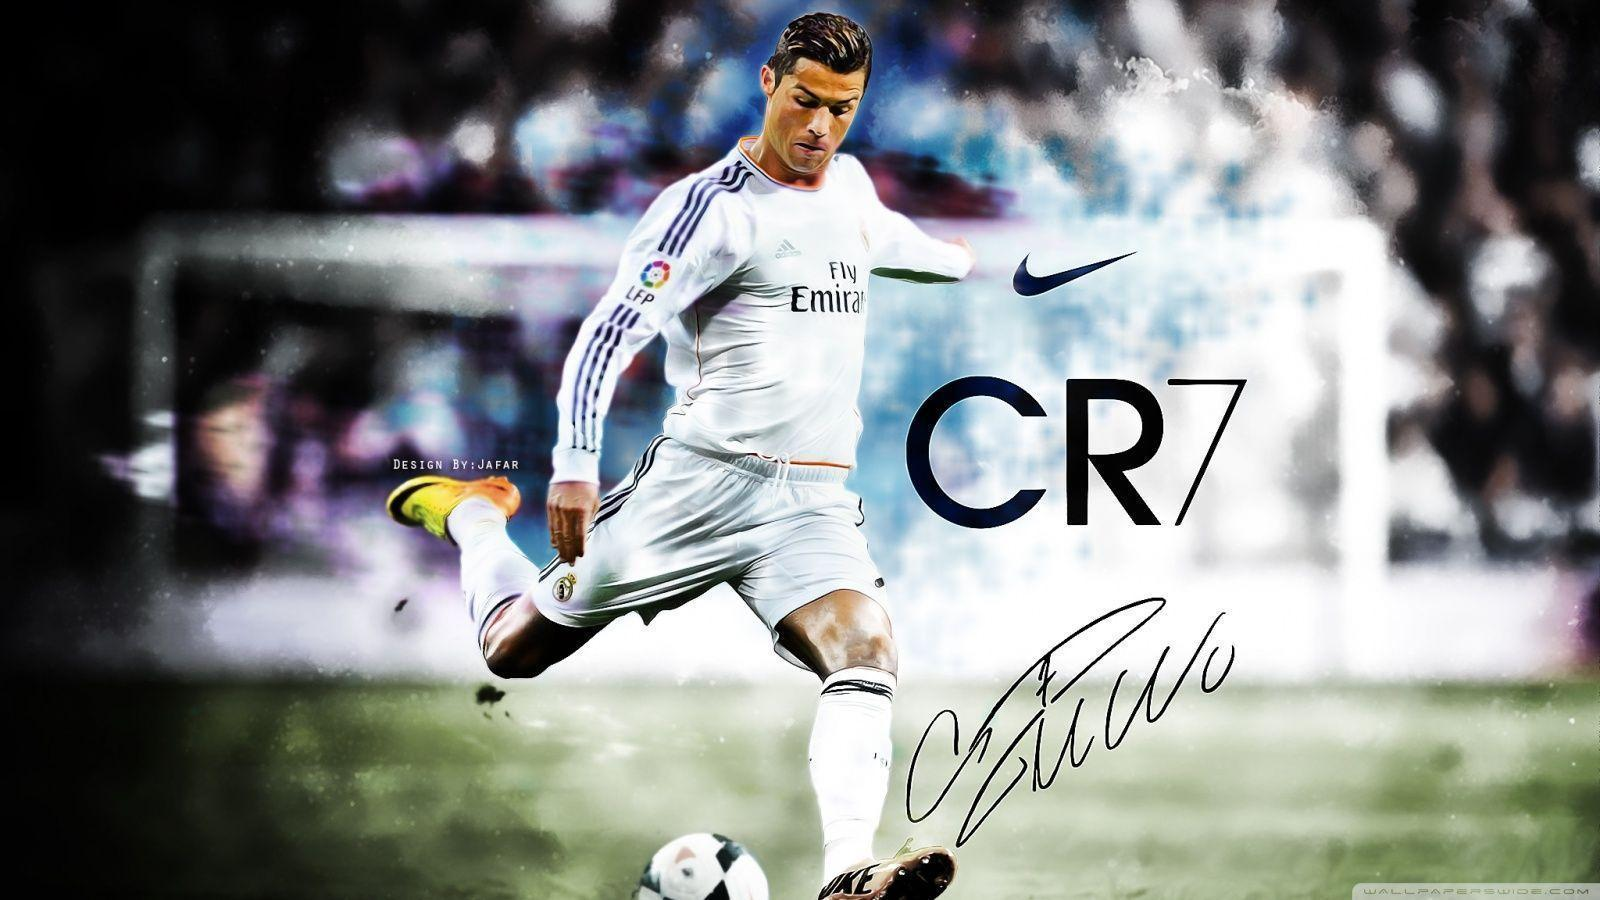 Cristiano Ronaldo Real Madrid 2014 HD desktop wallpaper ...